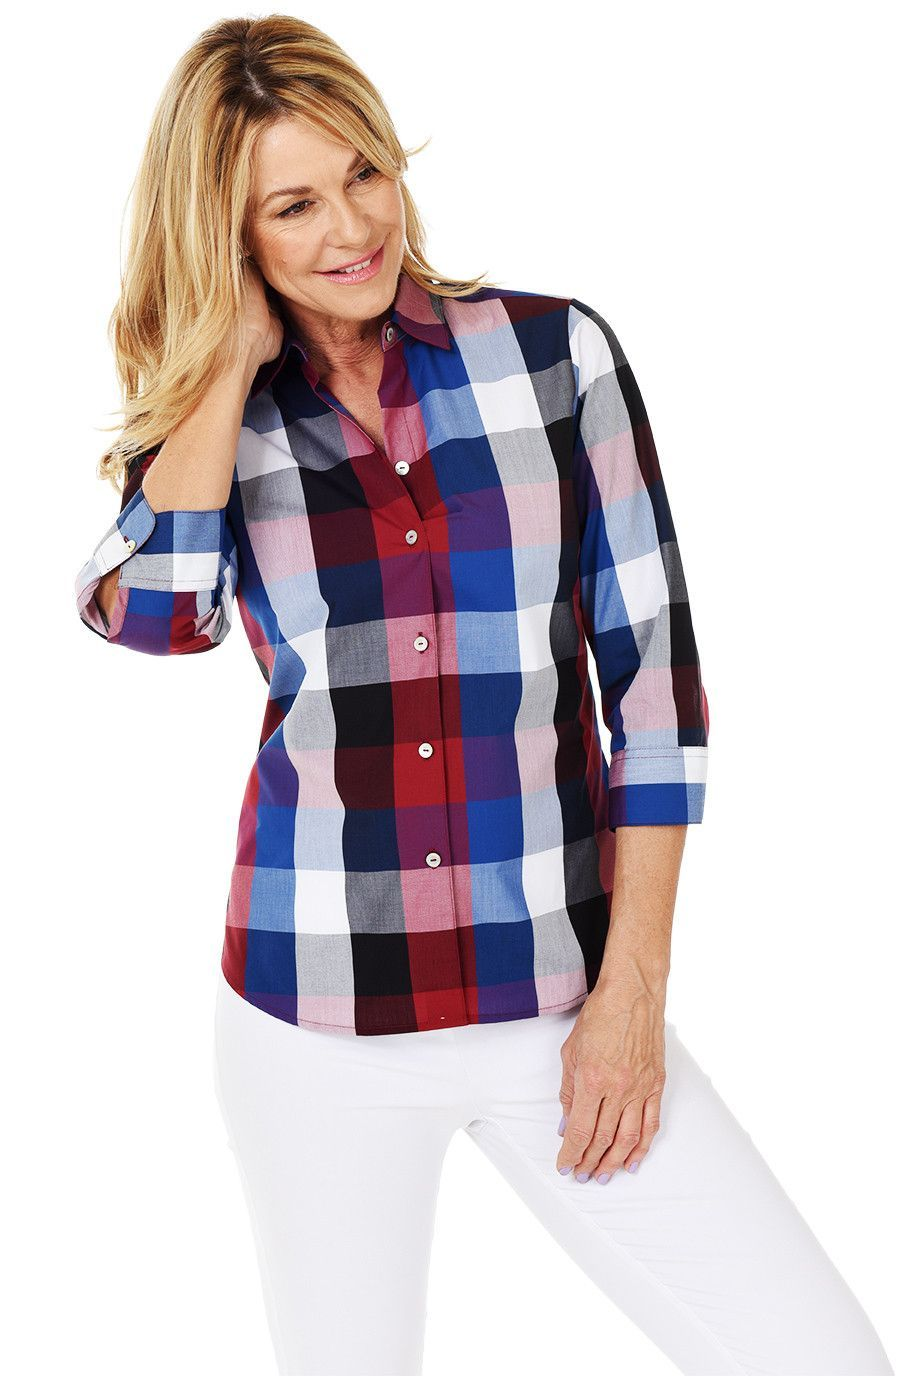 Flannel shirt knot  Buffalo Check ButtonDown Shirt  Products  Pinterest  Products